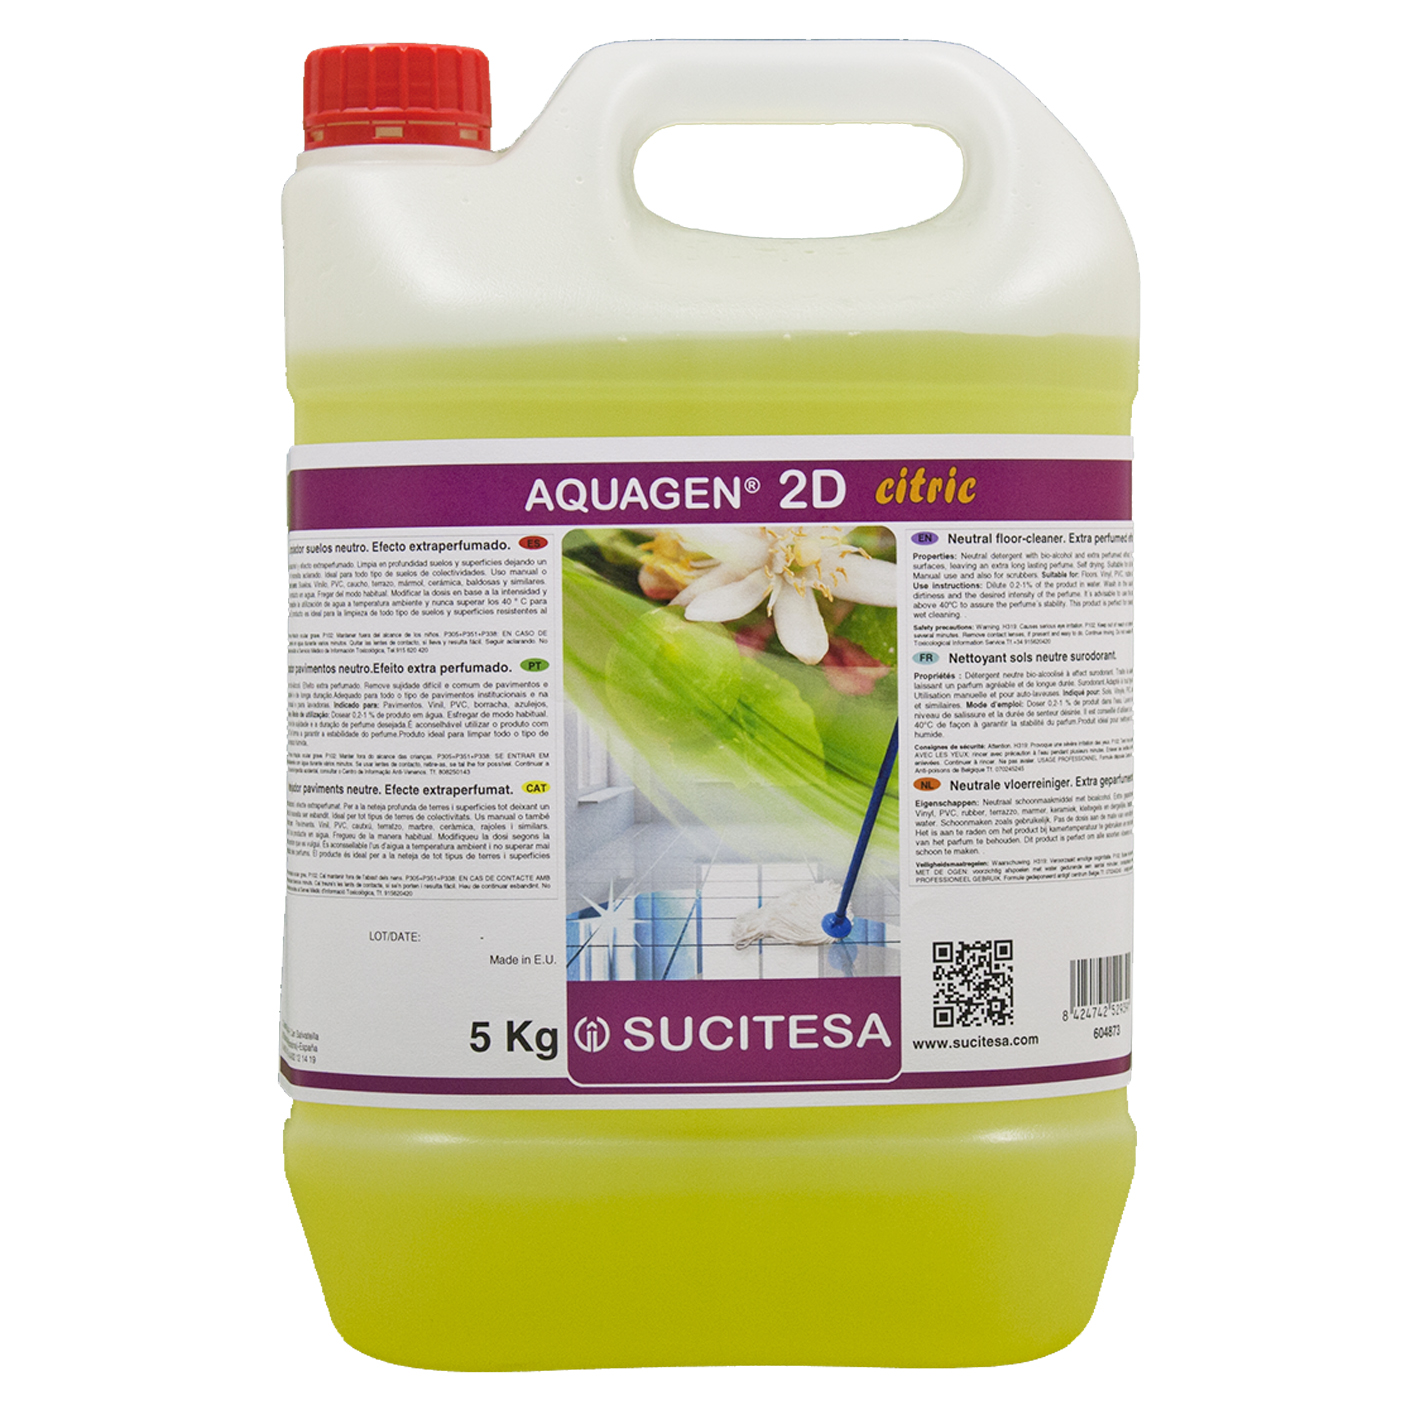 AQUAGEN 2D CITRIC 5l Image